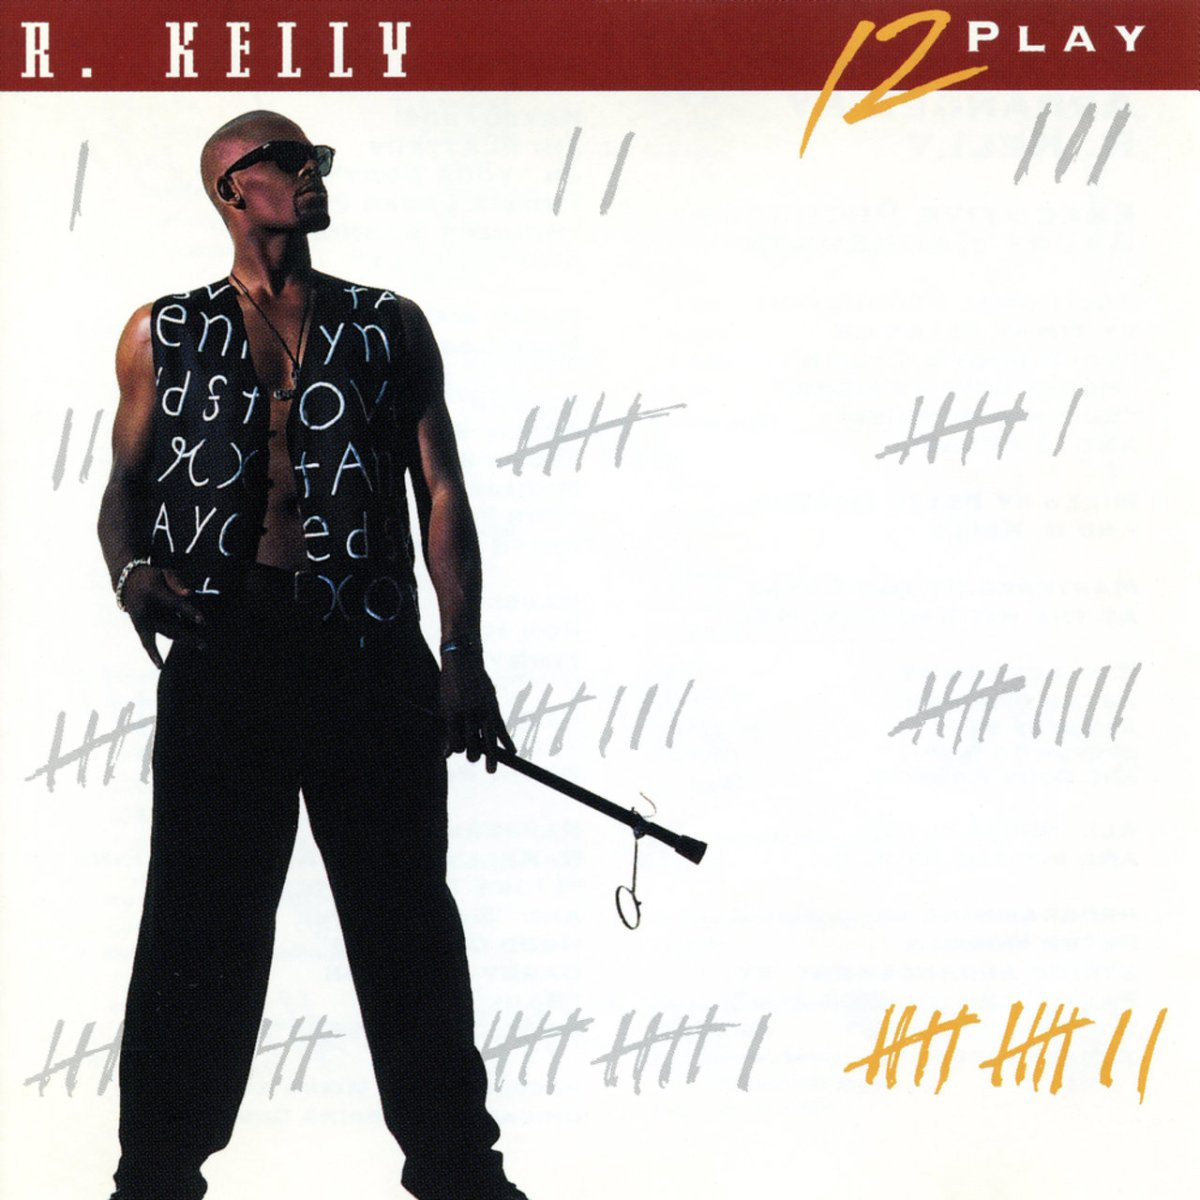 R. Kelly - 12 Play (Cover)